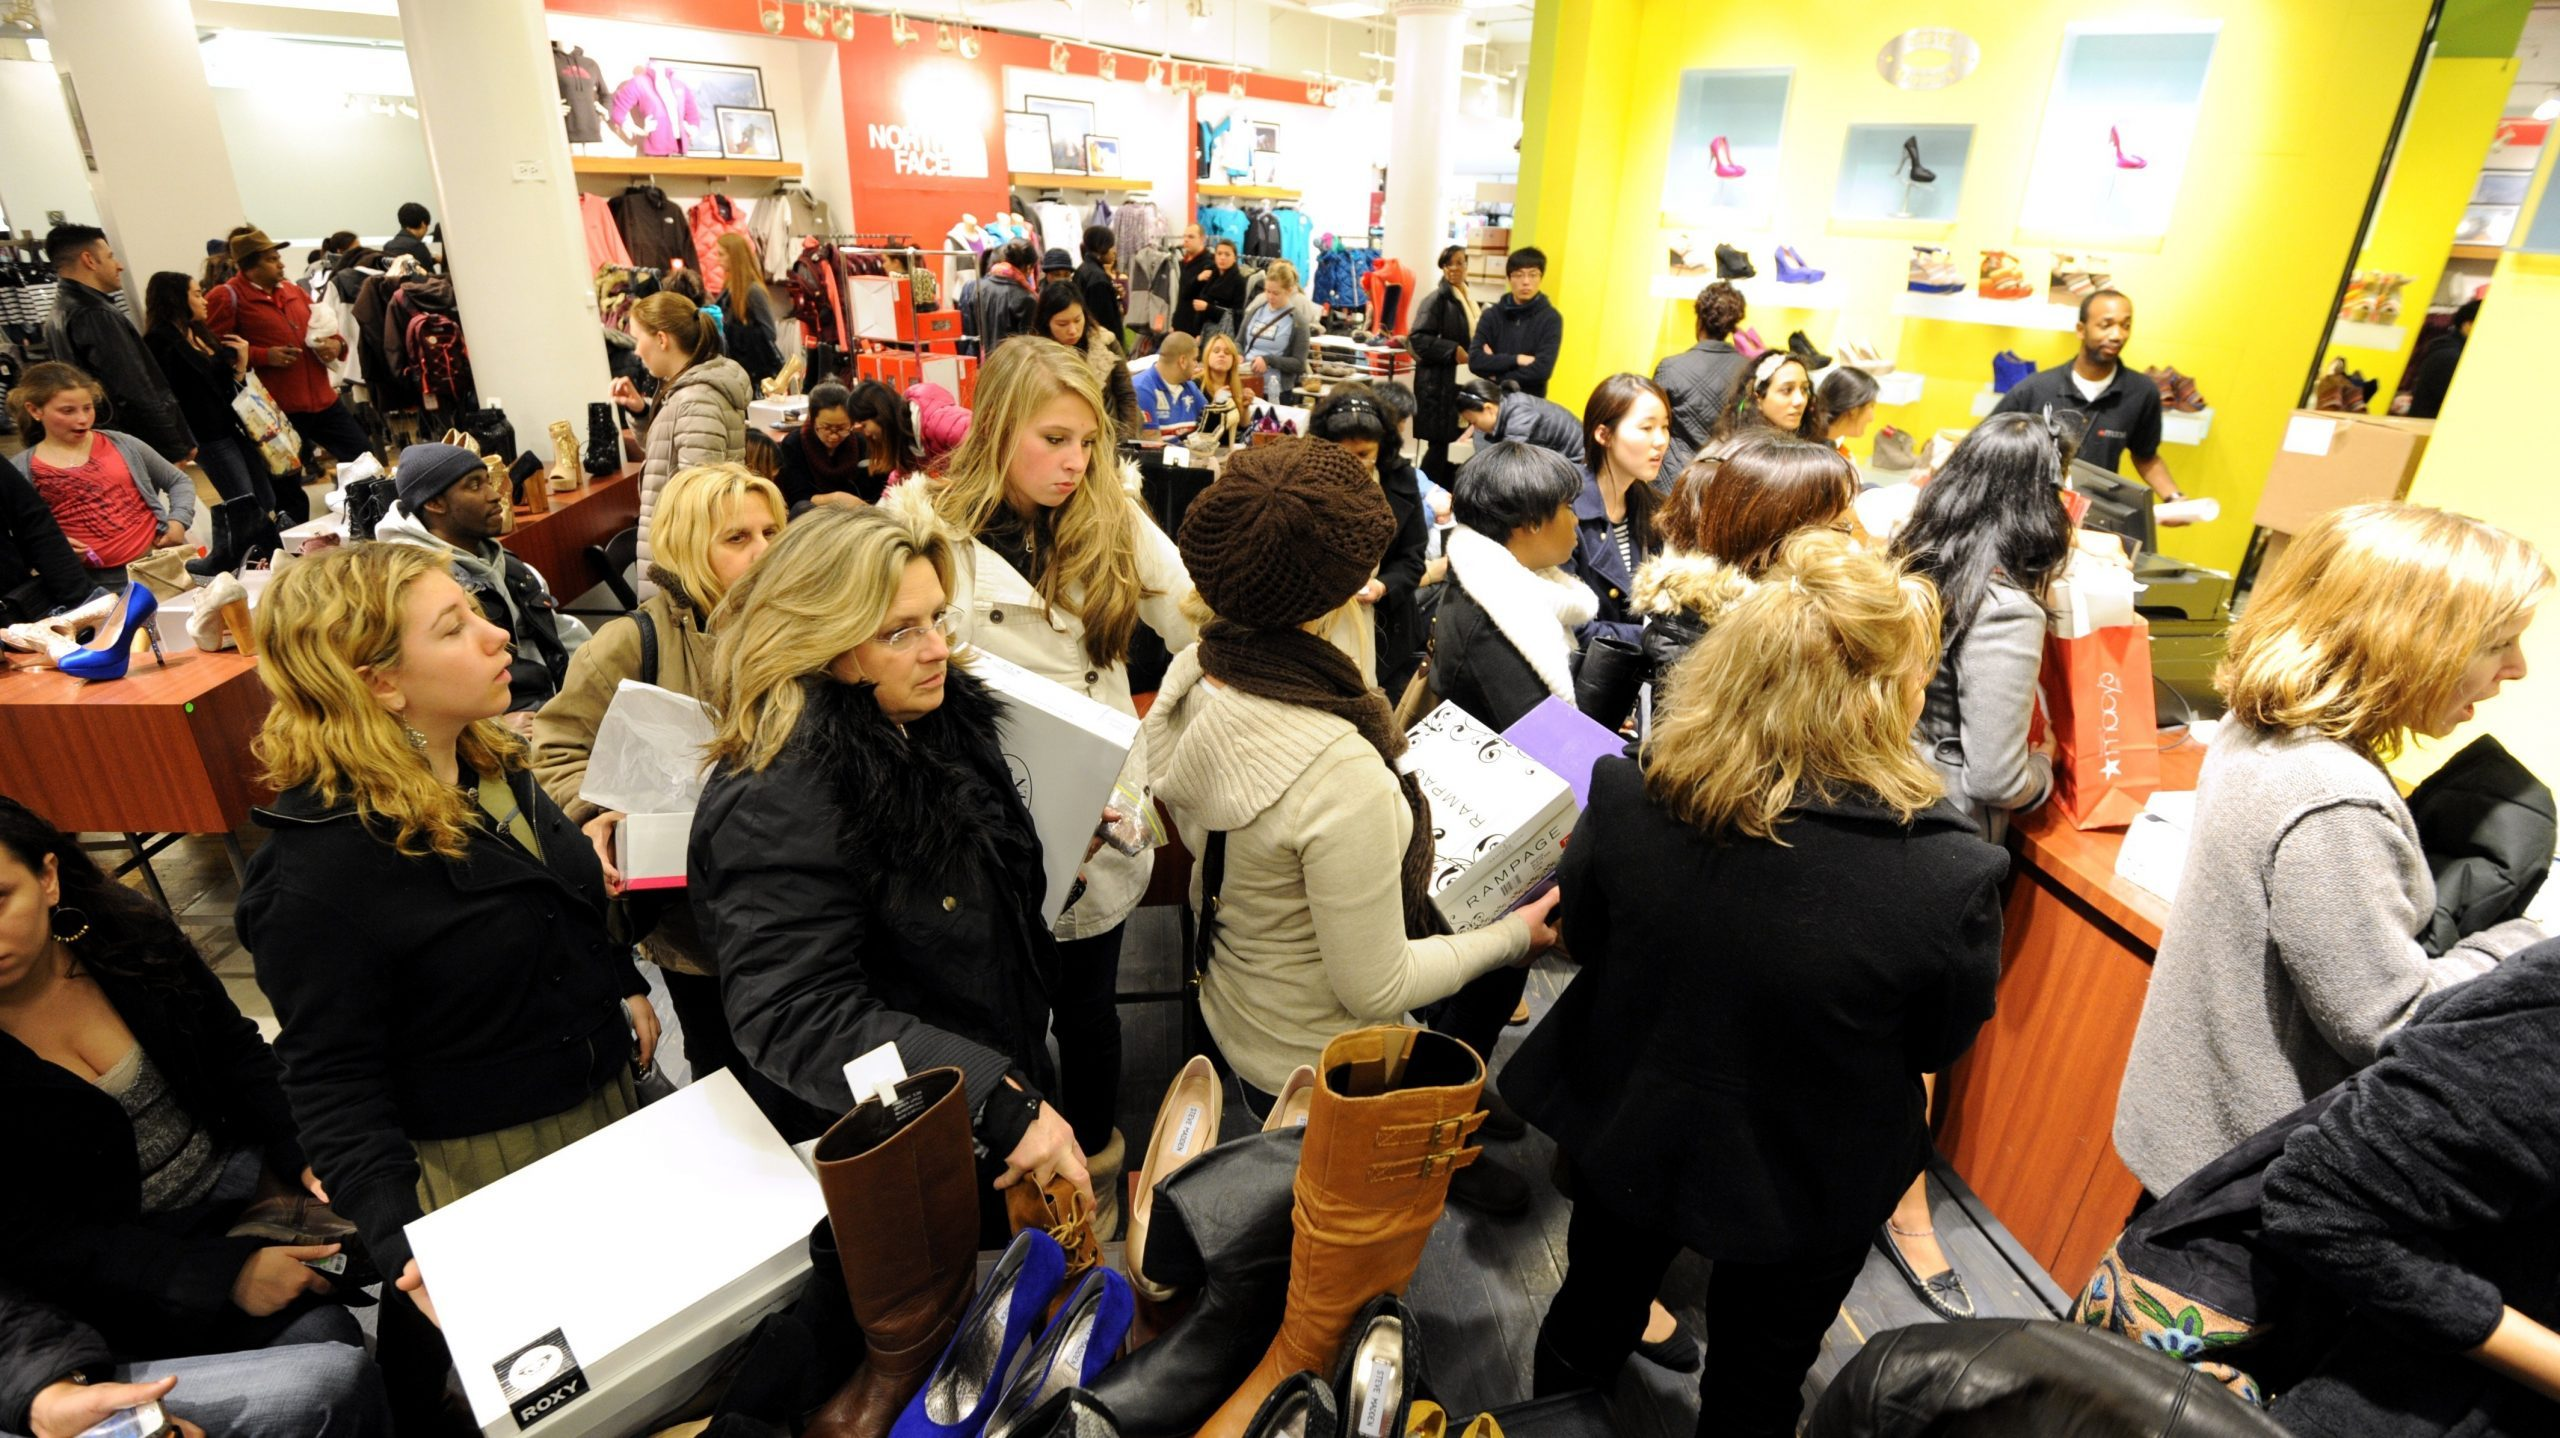 La folie du shopping s'empare de New York